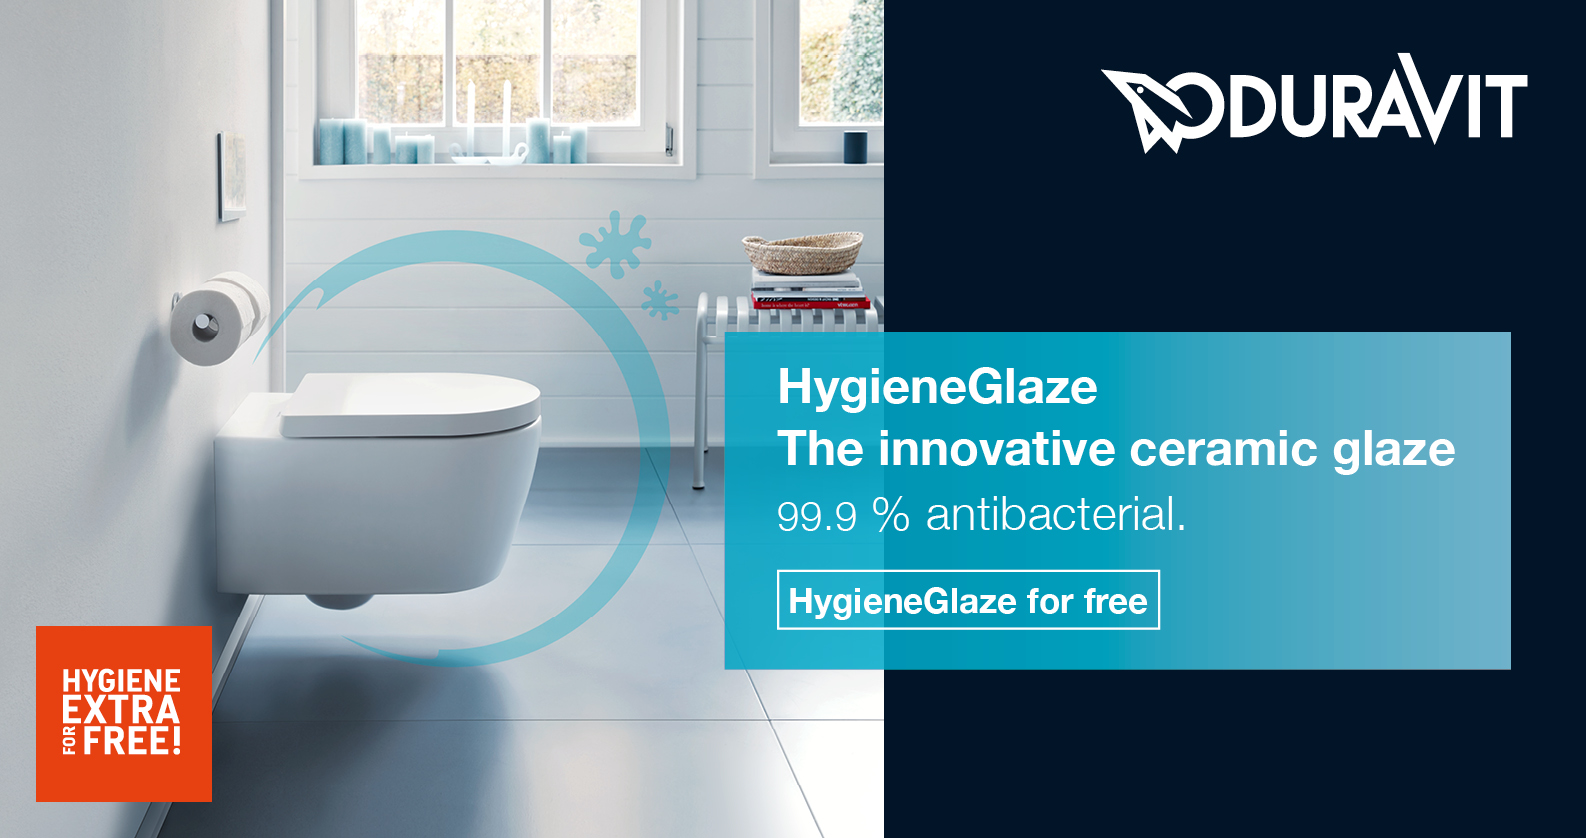 Get Duravit HygieneGlaze for free at xTWOstore